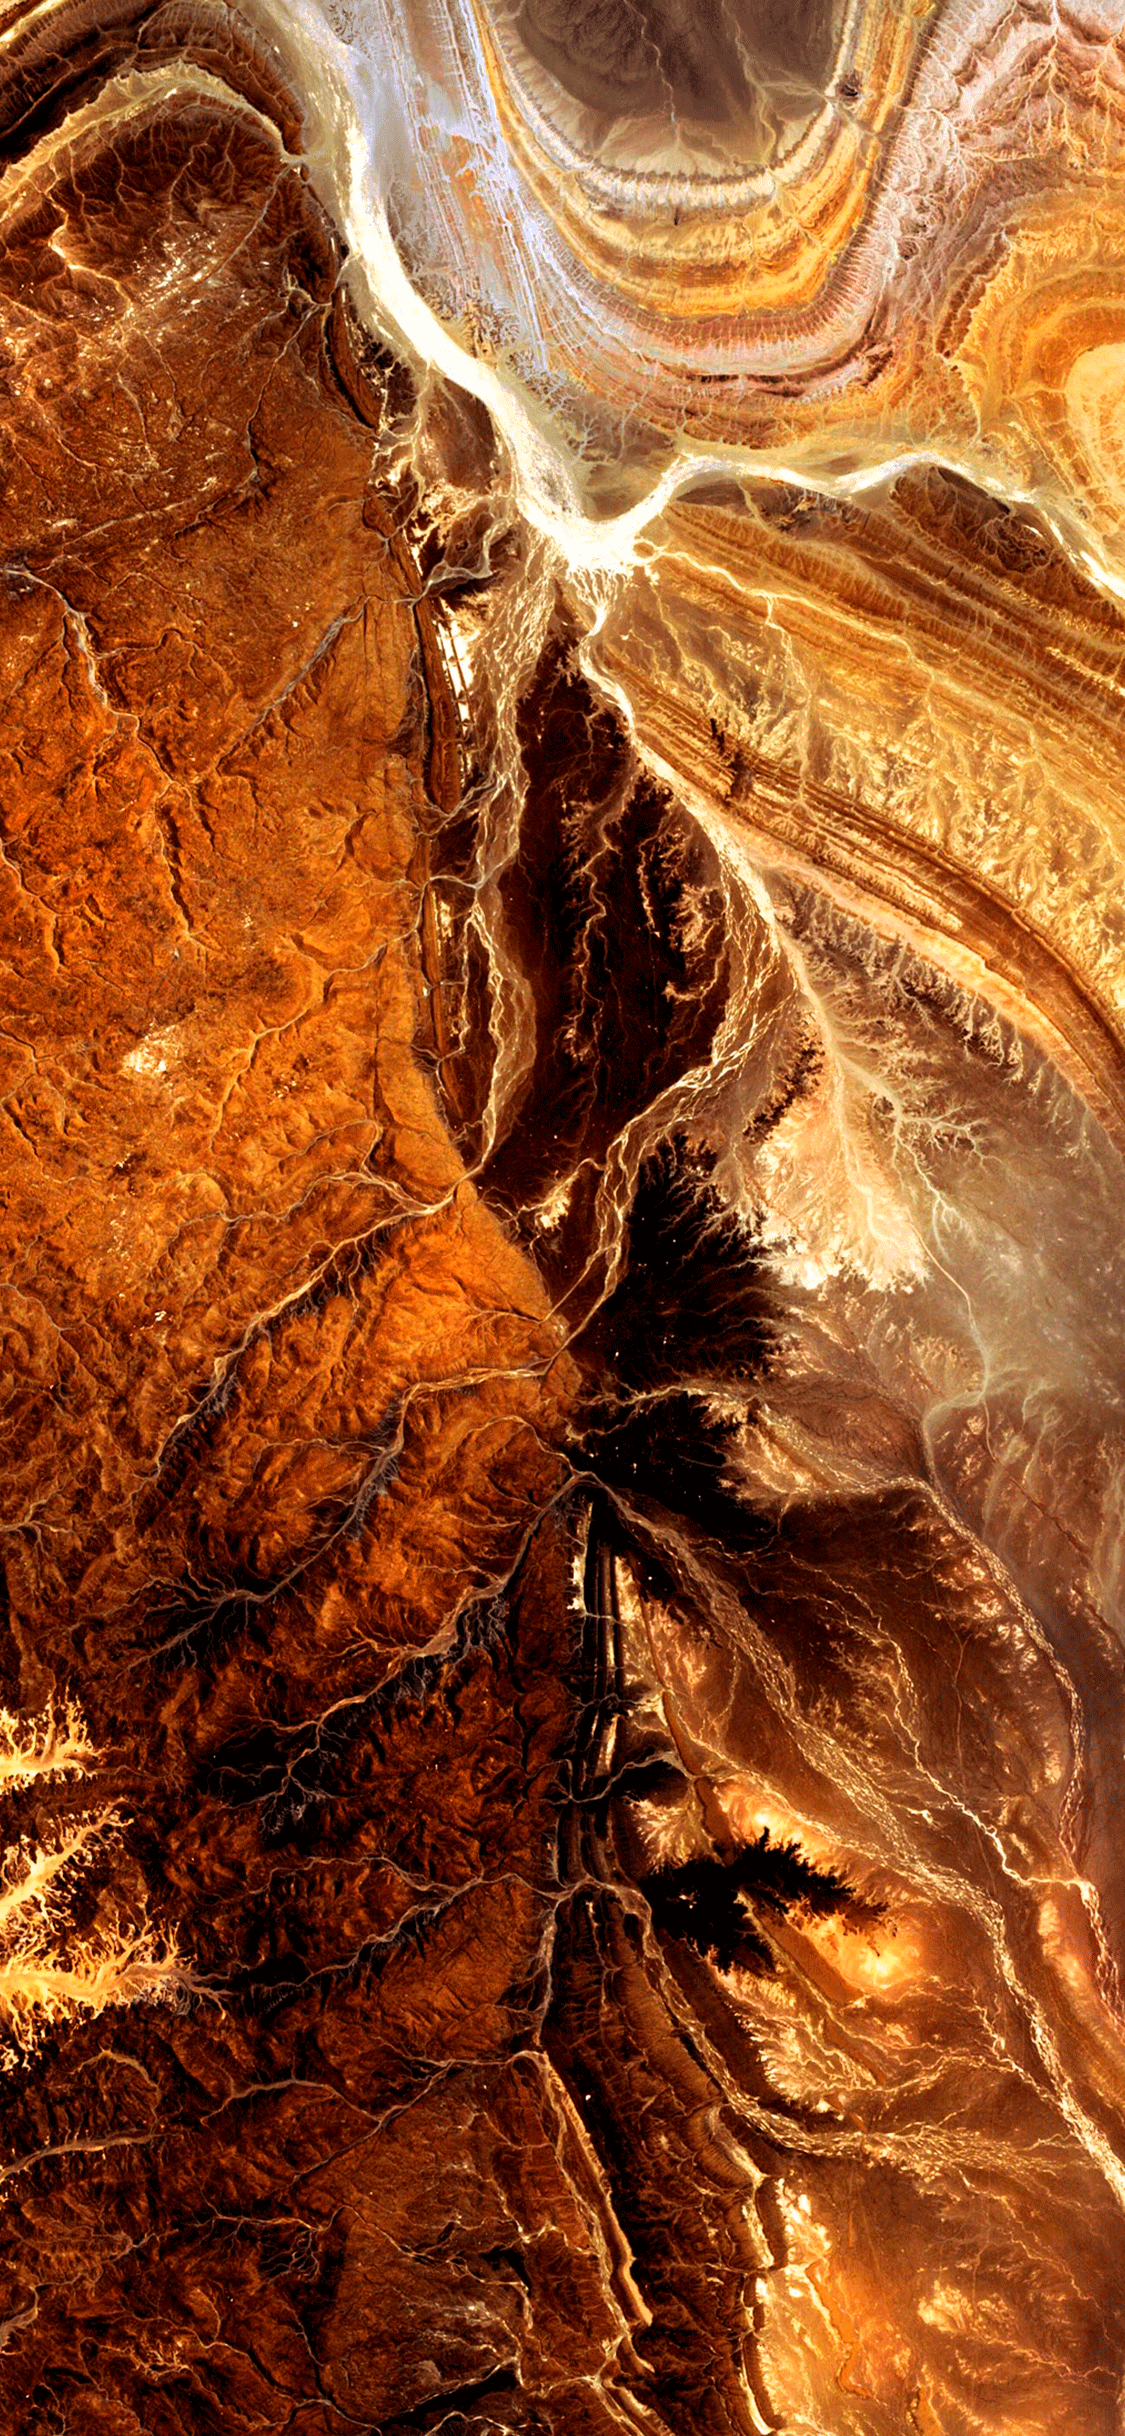 iPhone wallpaper satellite images algerian sahara Satellite images